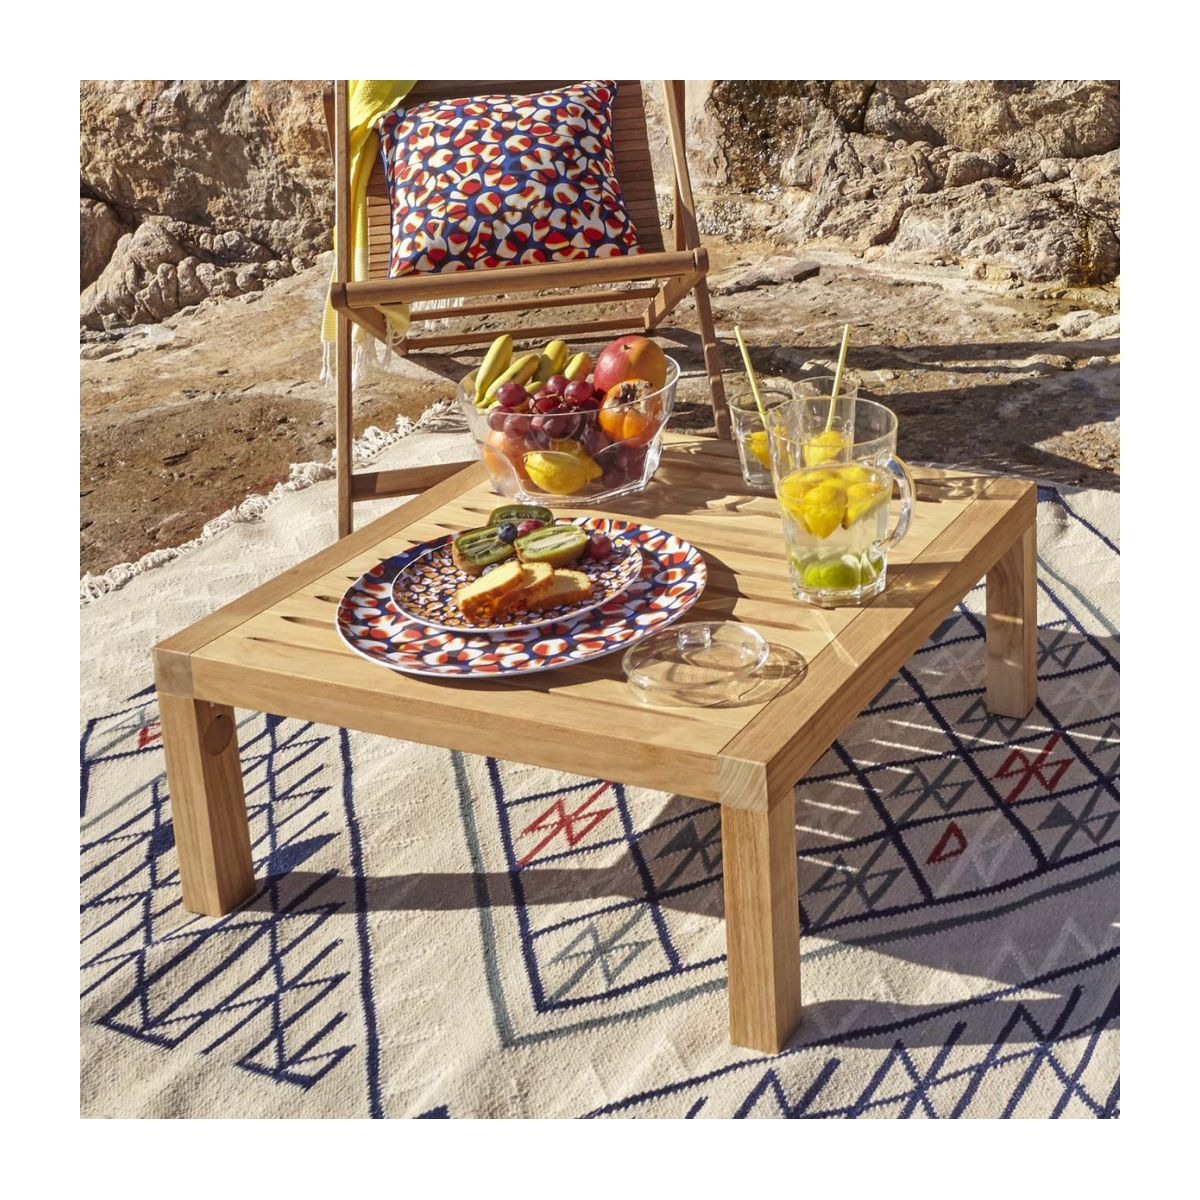 Table basse de jardin en teck -Naturel - 70 x 70 cm n°6